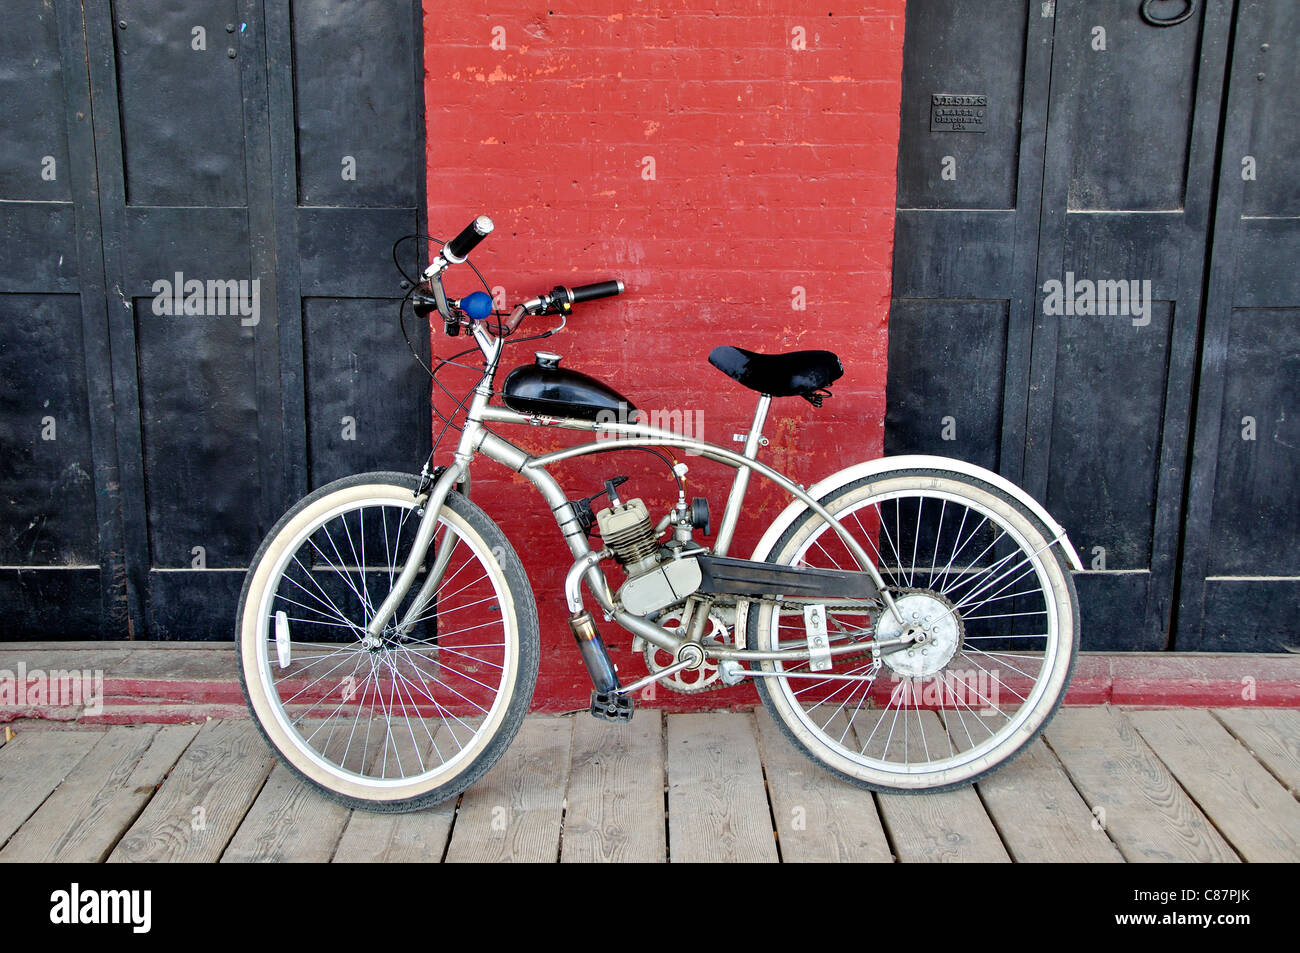 A motorized bicycle - Stock Image